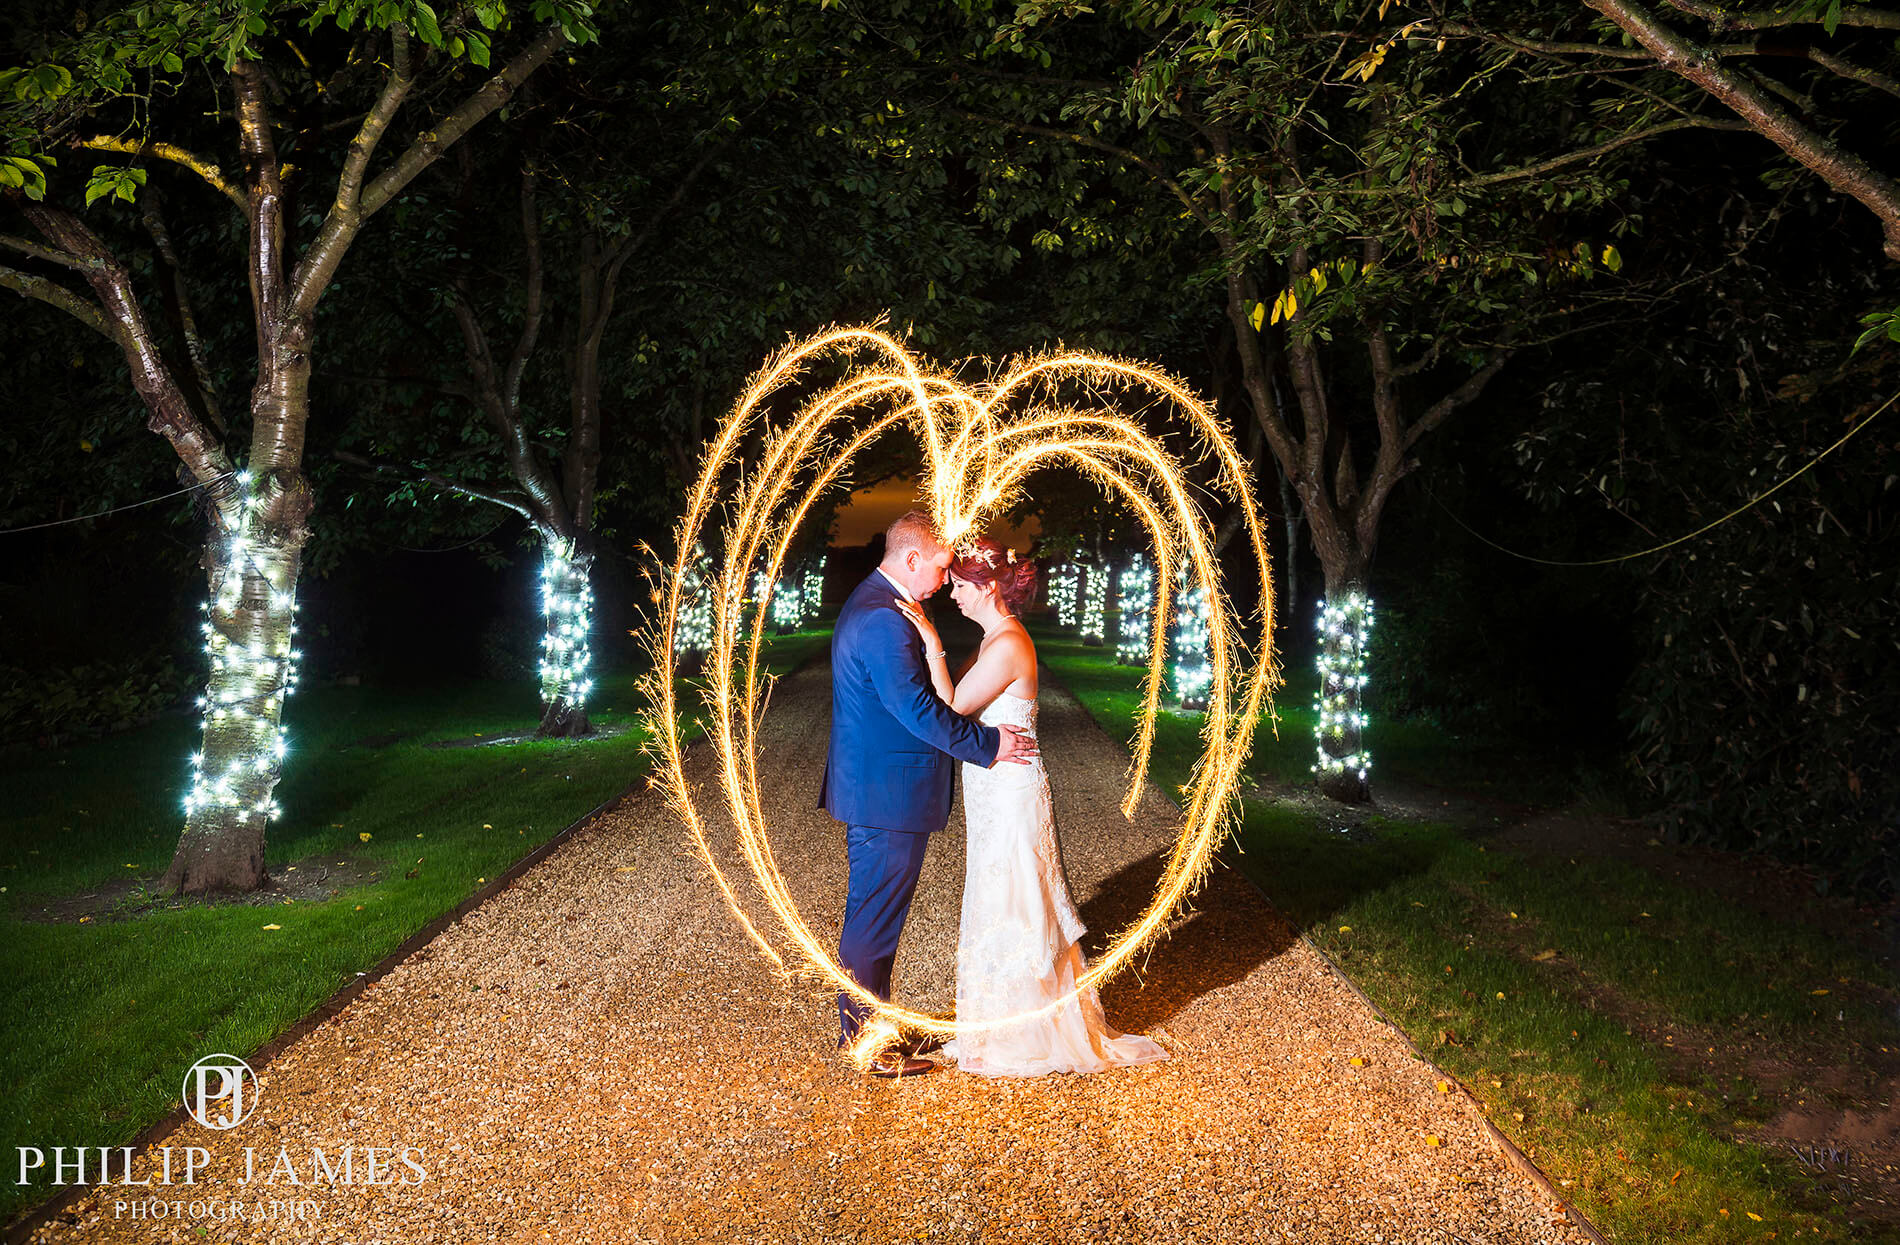 Birmingham Wedding Photographer - Philip James Photography based in Solihull (68 of 68)